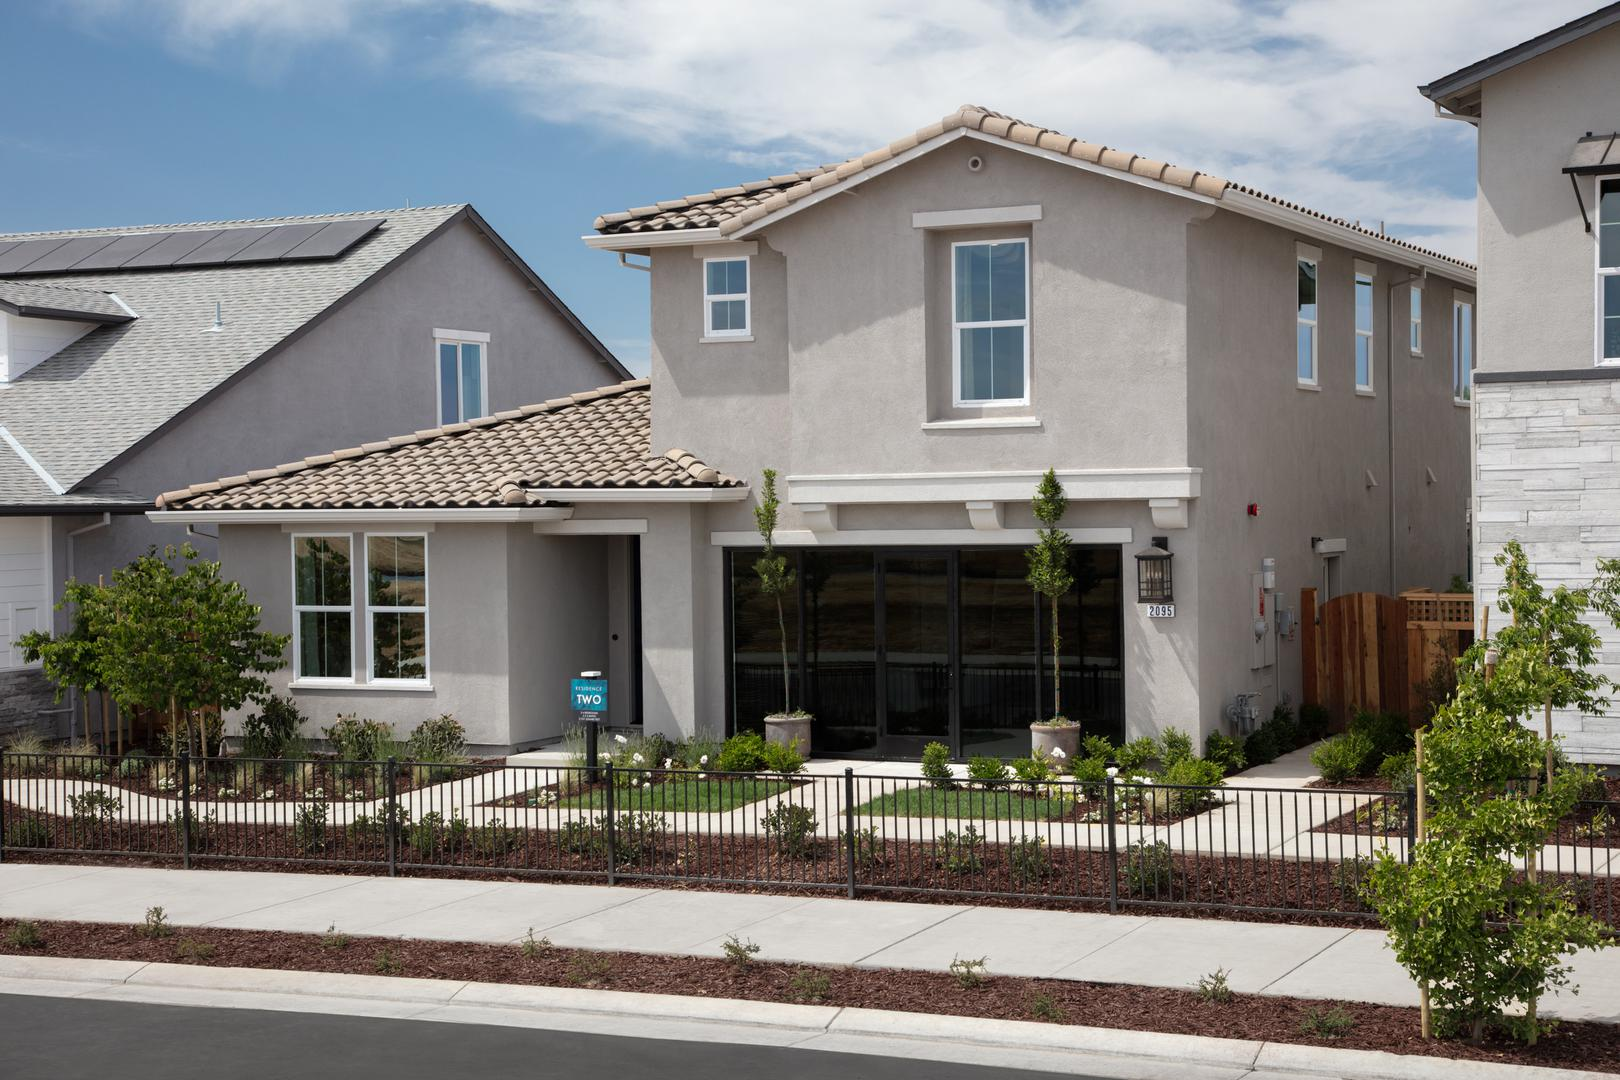 Haven Plan 2 at River Islands in Lathrop California